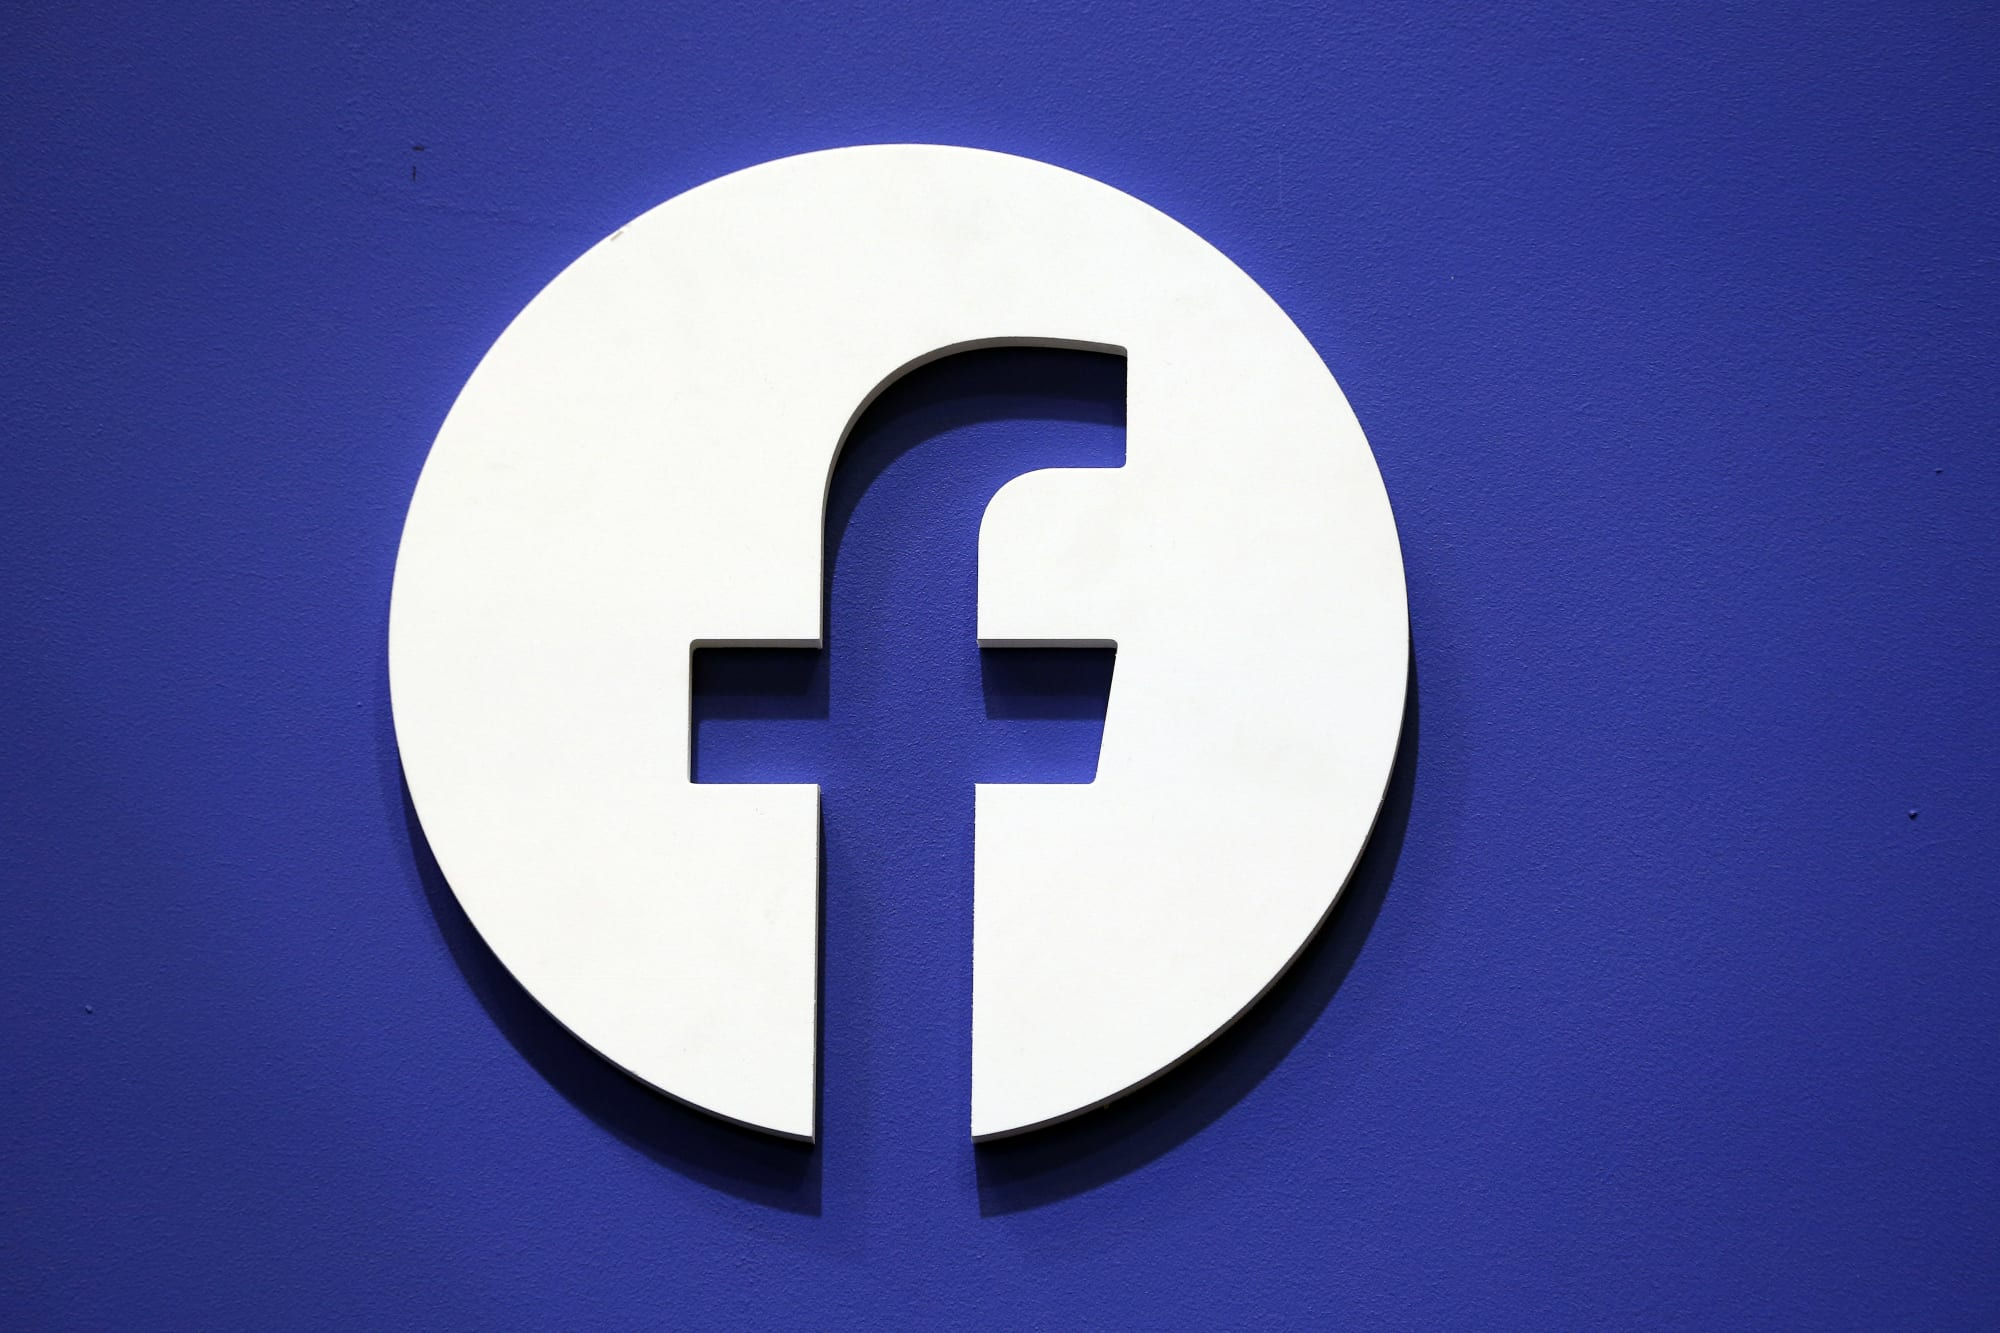 Facebook tweaks News Feed to focus on close friends and